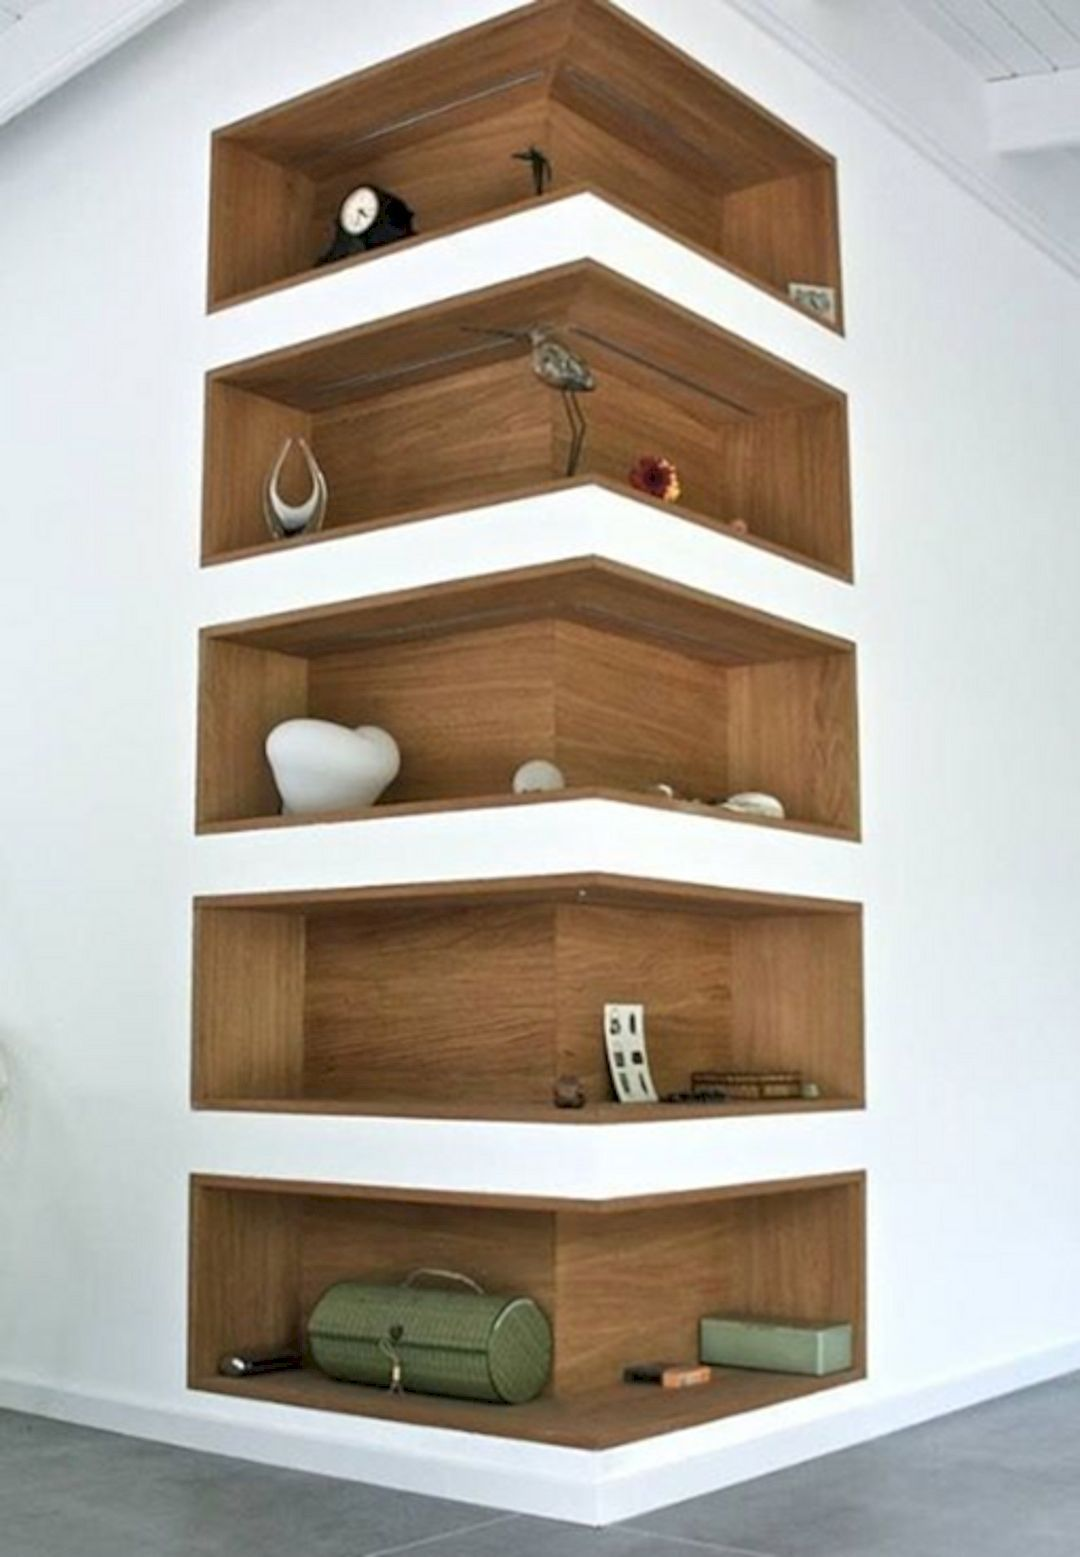 Shelf Design Ideas Space Saving Corner Shelf Design Ideas Furniture Design Ideas